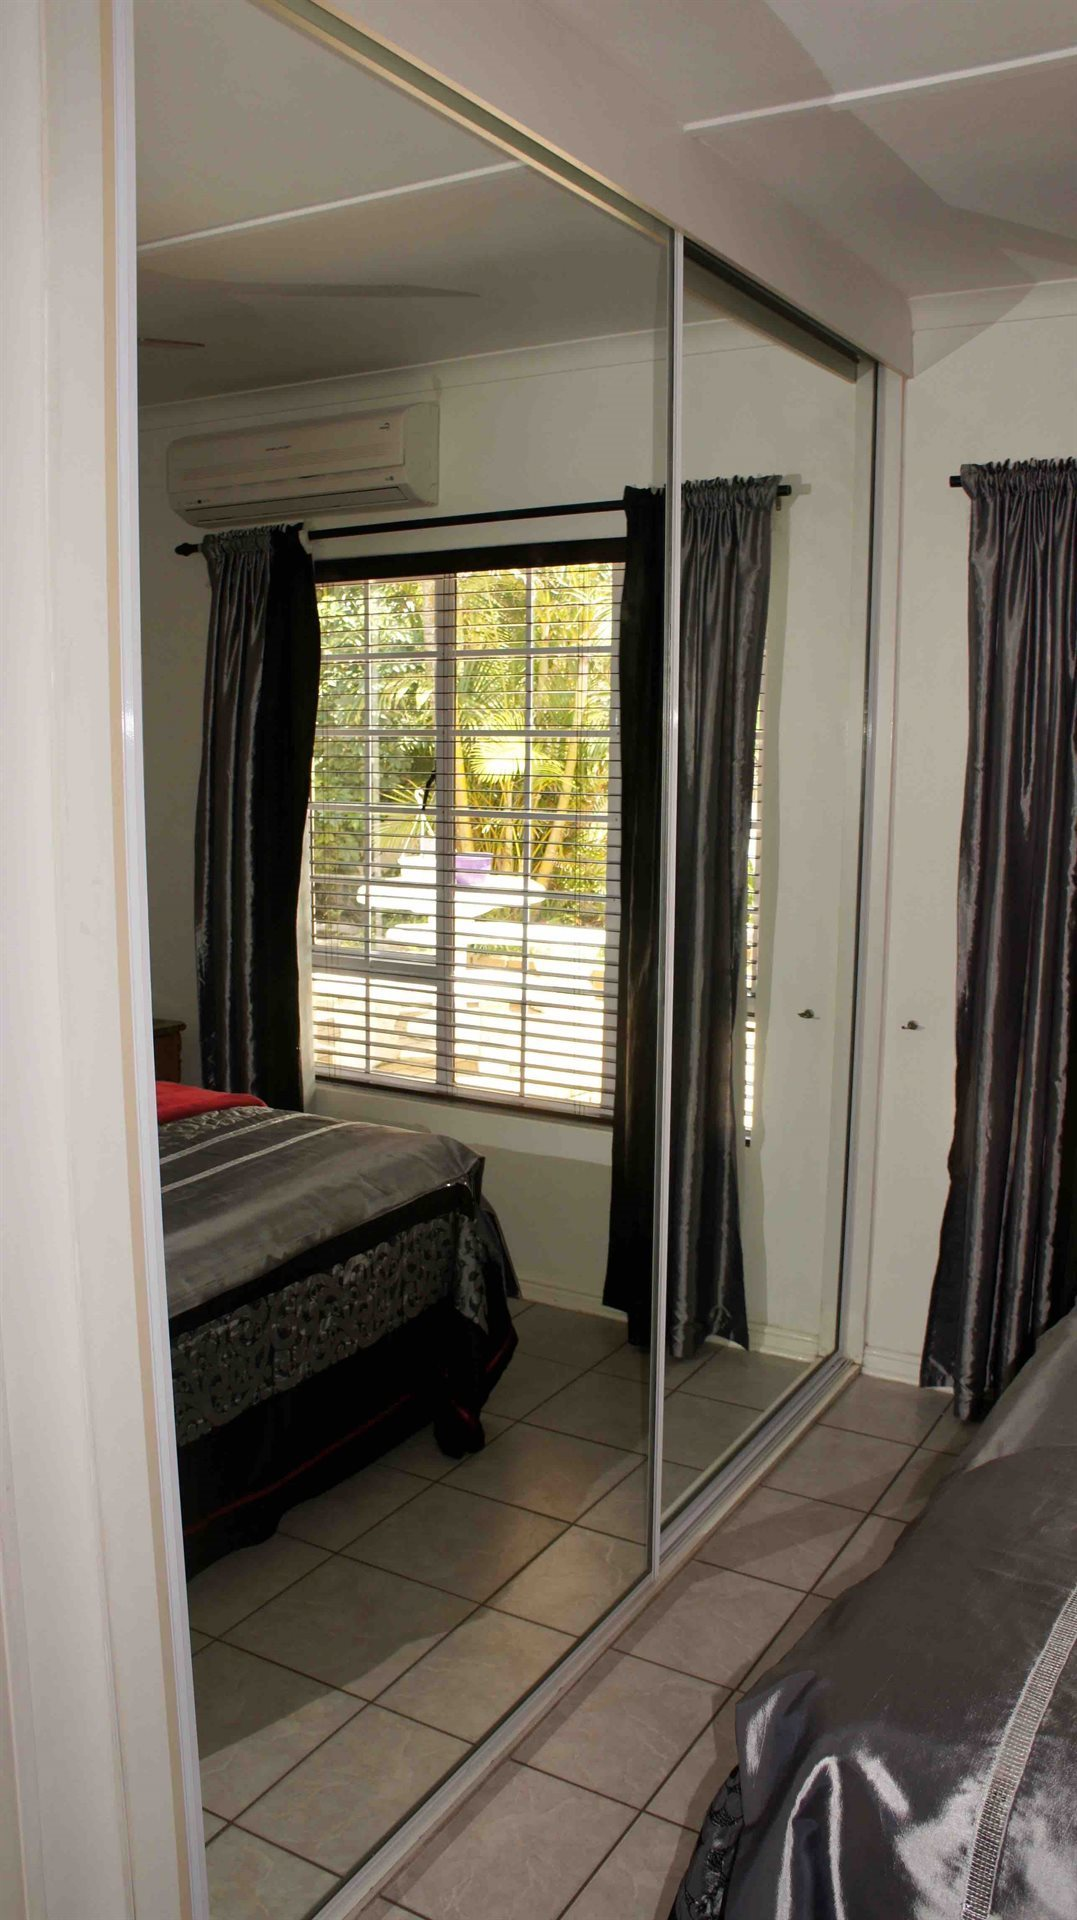 Meer En See property for sale. Ref No: 13544273. Picture no 11